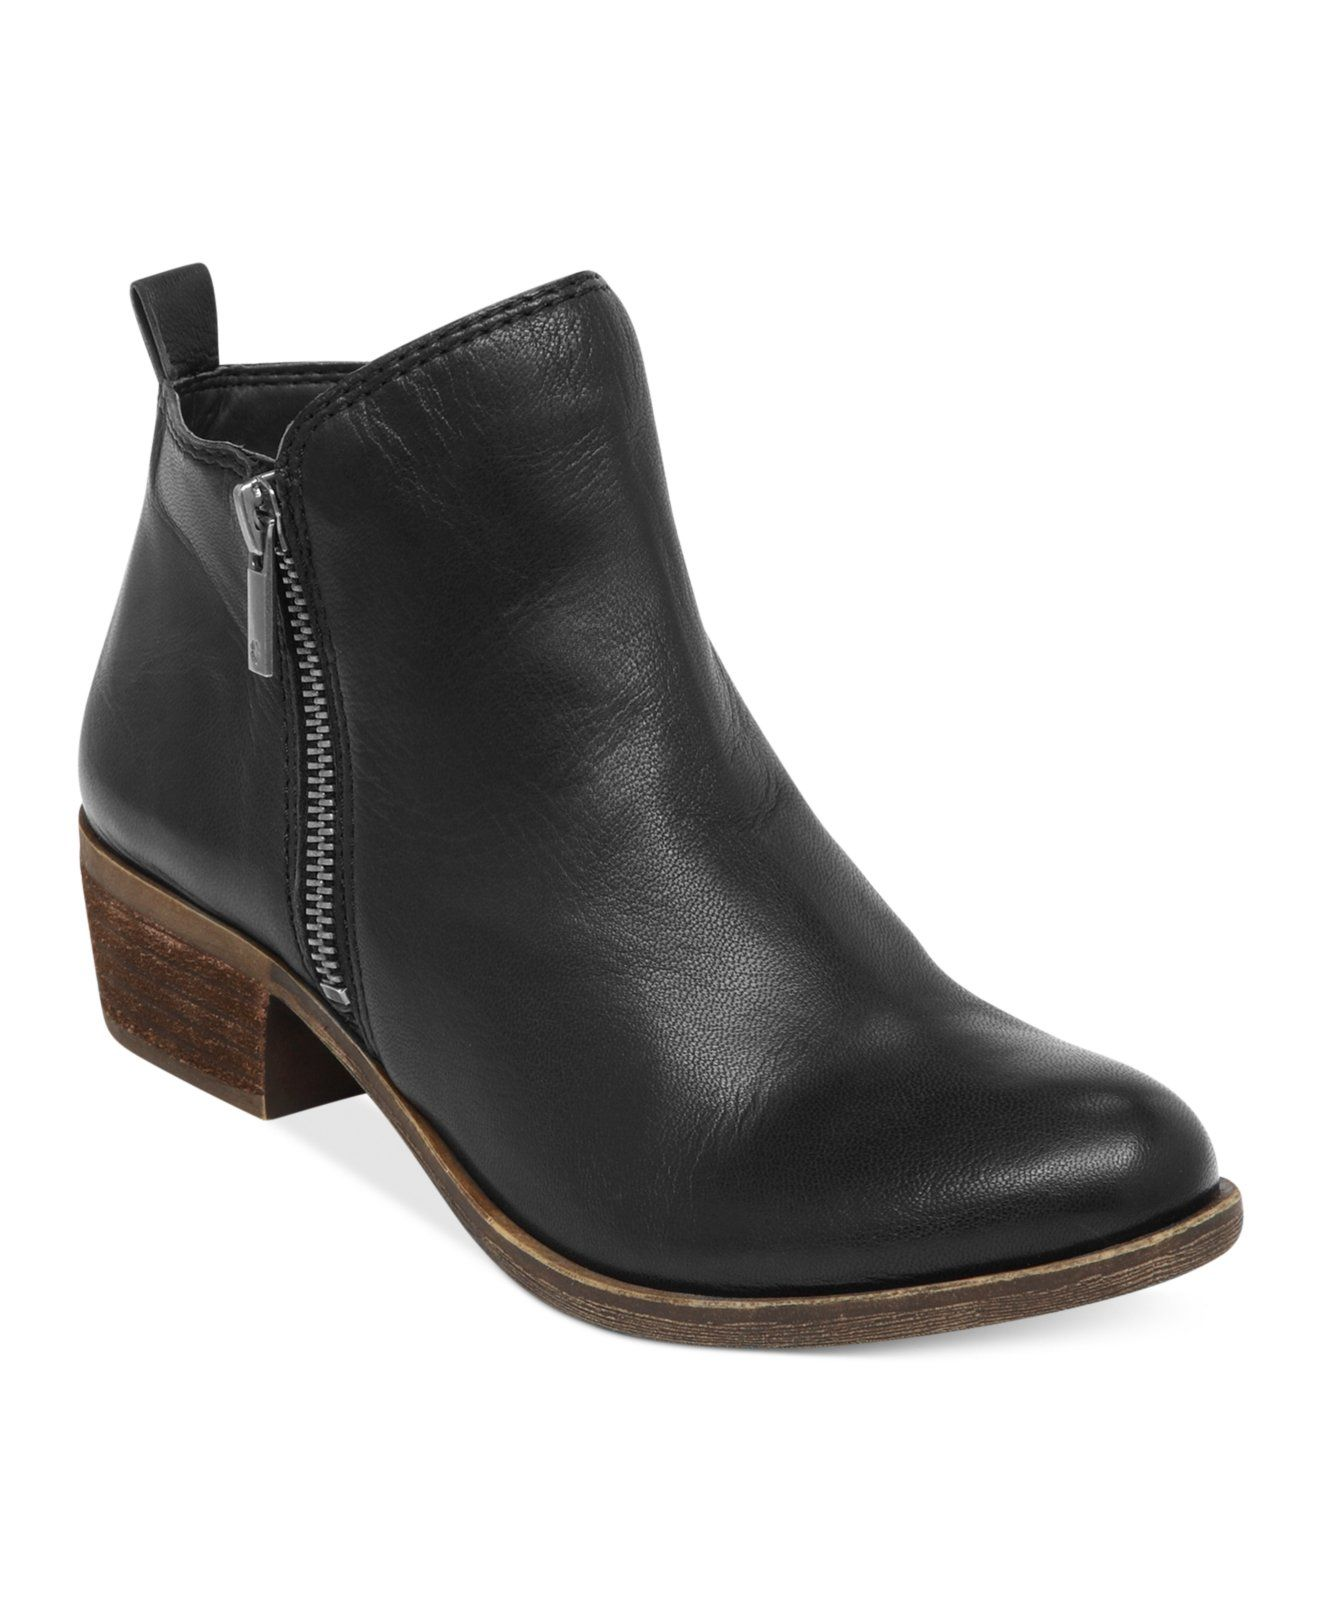 Lucky Brand's Basel booties are the perfect utilitarian style. You can pair them with just about anything and always look stylish. | Leather upper; manmade sole | Imported | Round closed-toe booties w